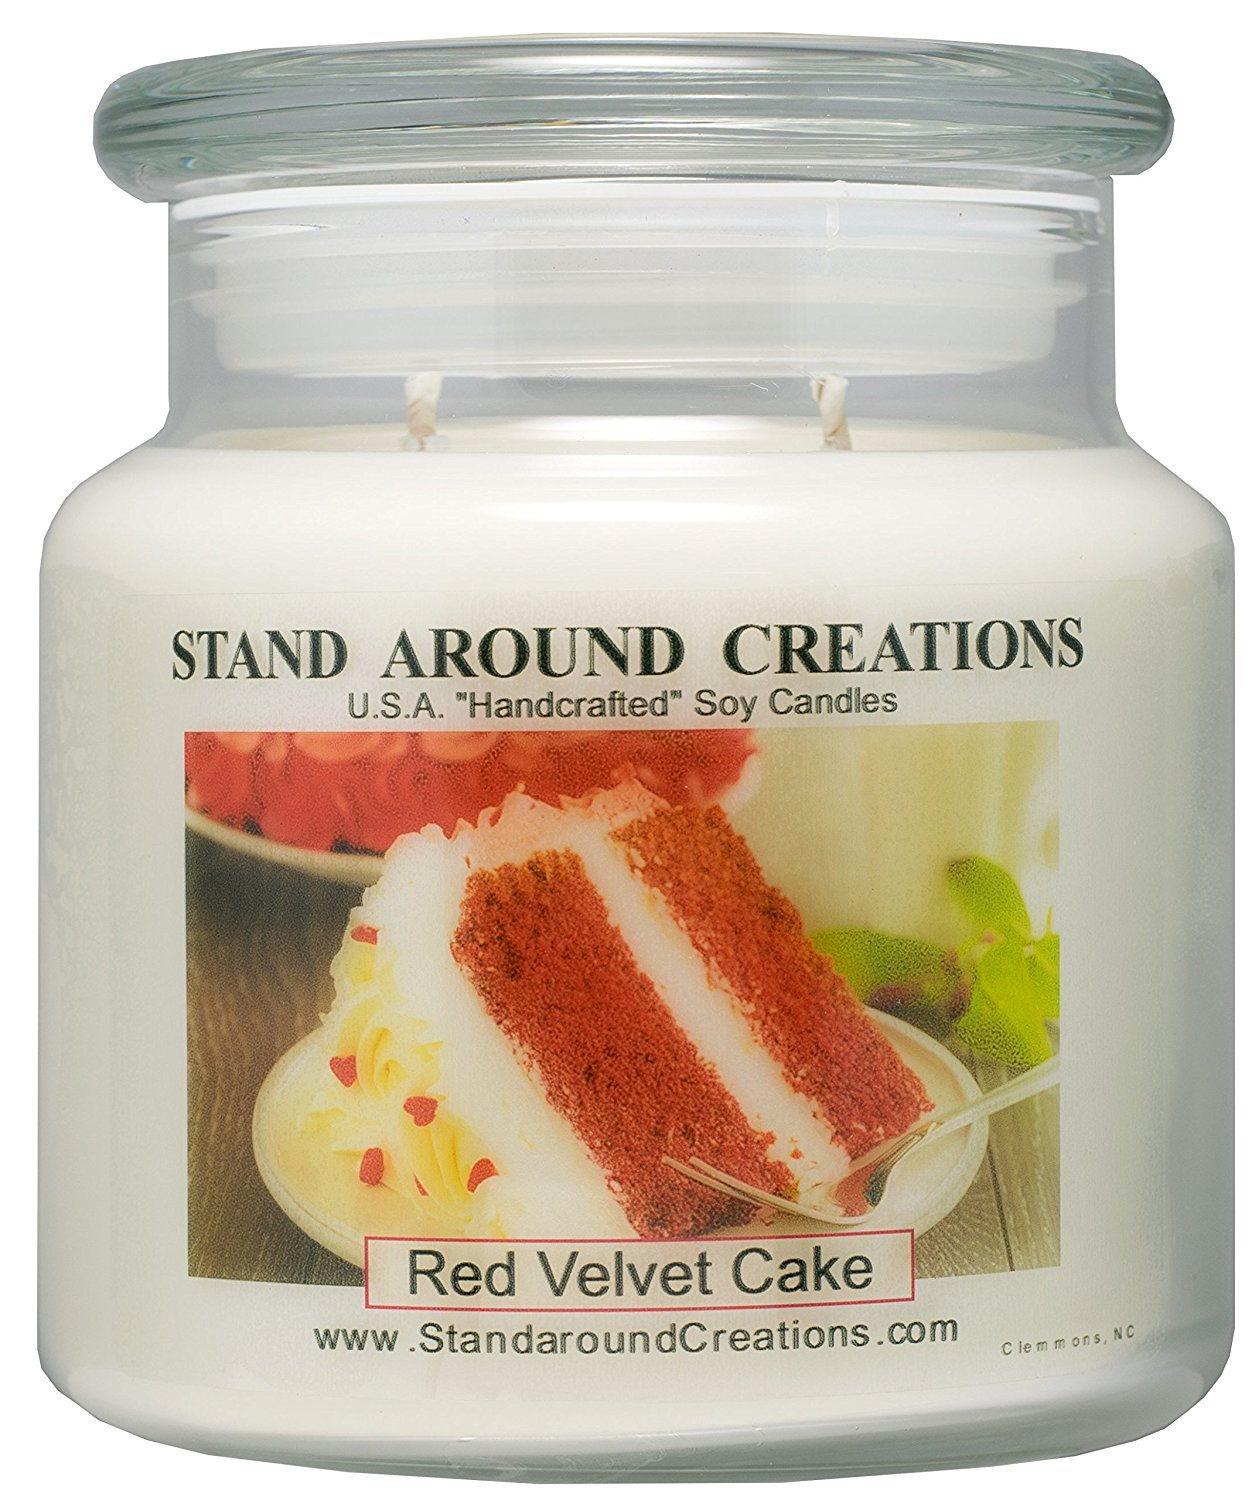 Premium 100% Soy Apothecary Candle - 16 oz. - Red Velvet Cake - A decadent blend of chocolate cake w/ sweet cream cheese frosting.